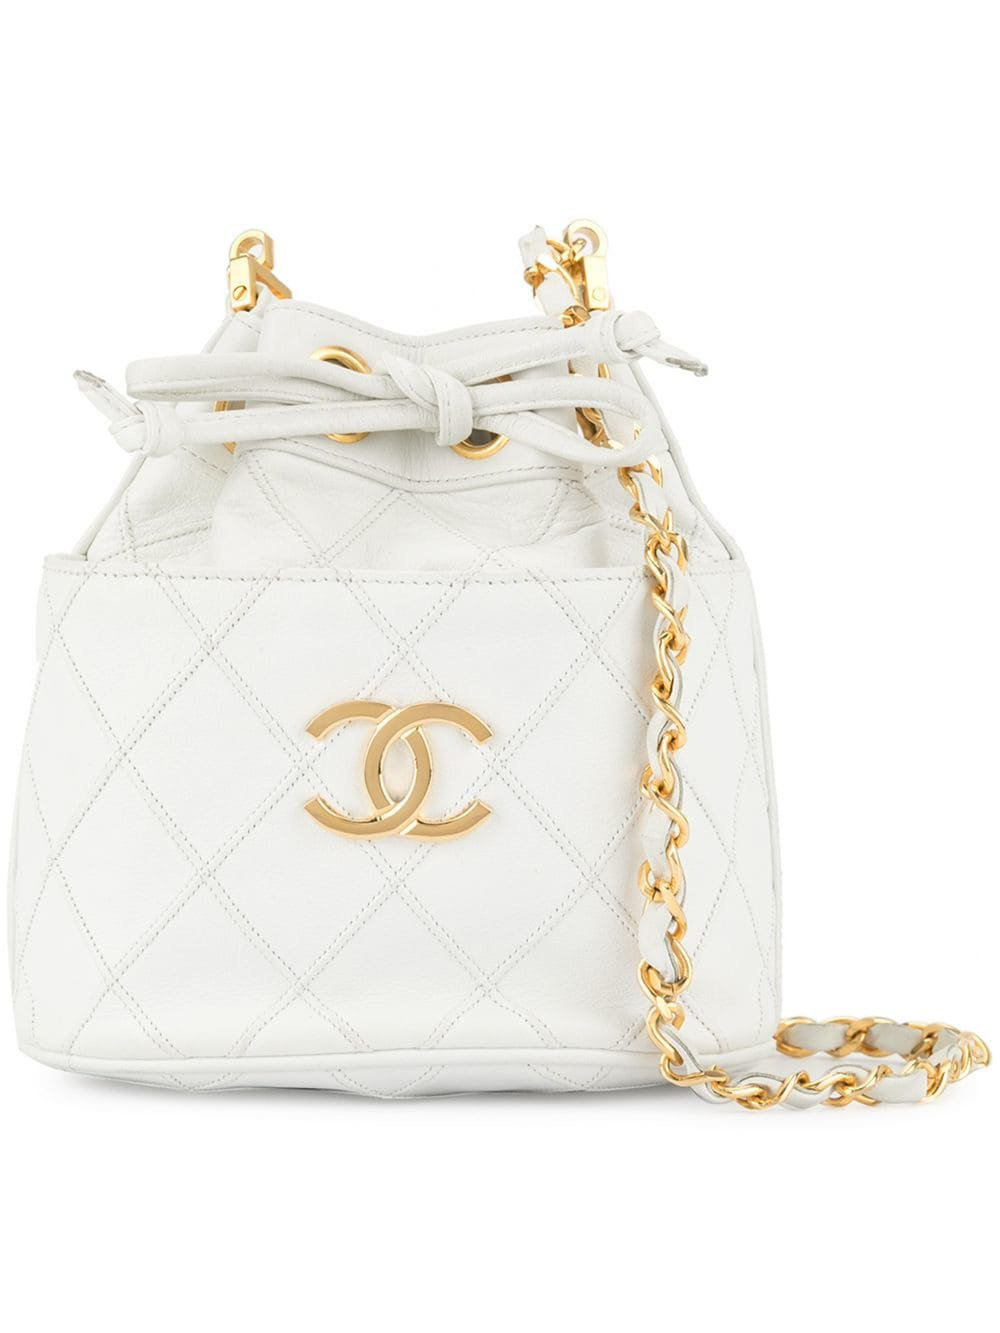 Chanel Vintage Cosmos Line drawstring chain shoulder bag $5,438 - Buy Online - Mobile Friendly, Fast Delivery, Price